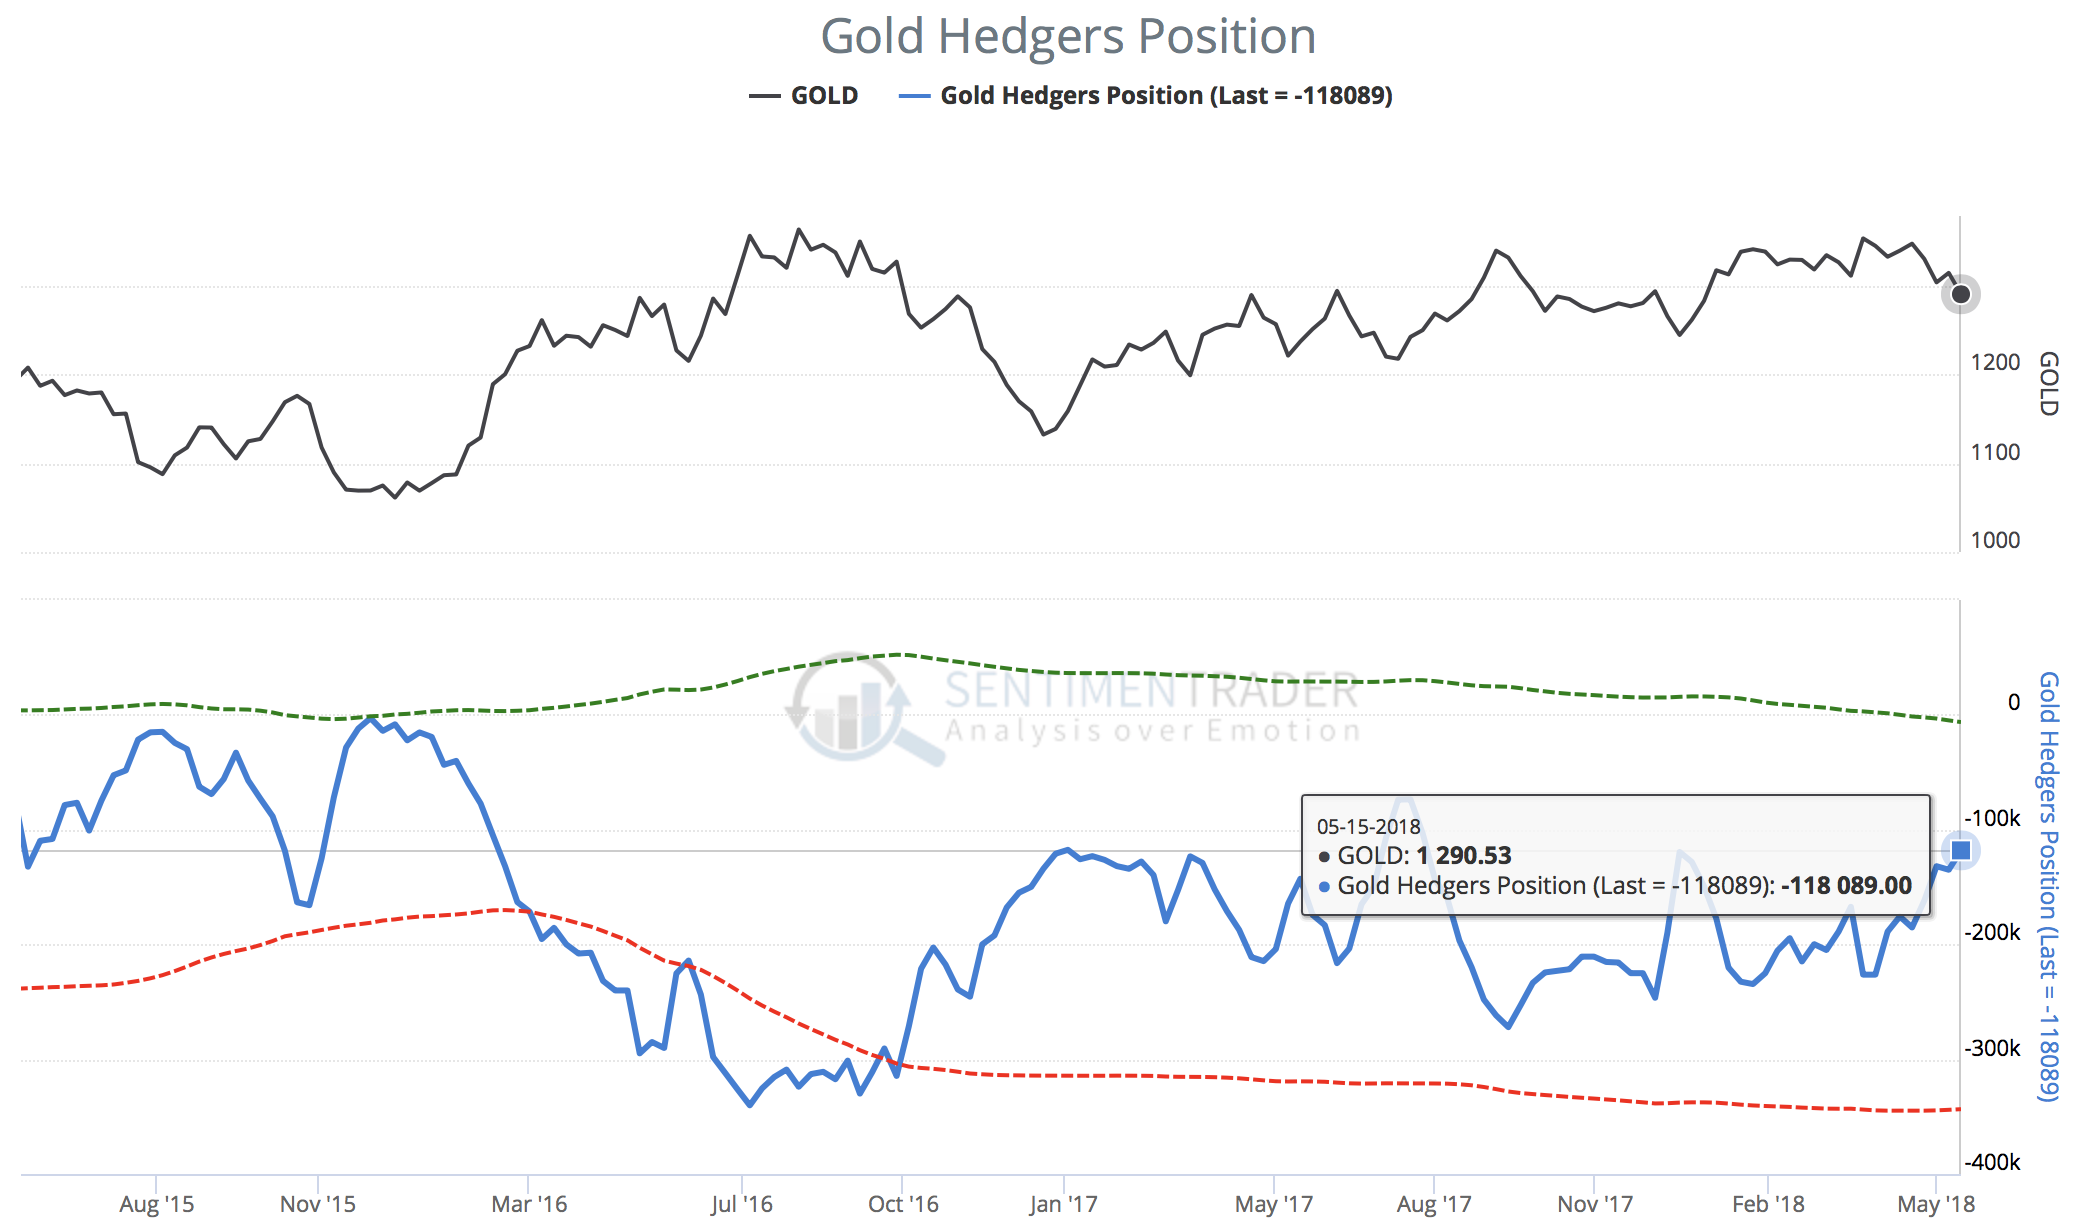 Gold hedgers position as of May 15th, 2018